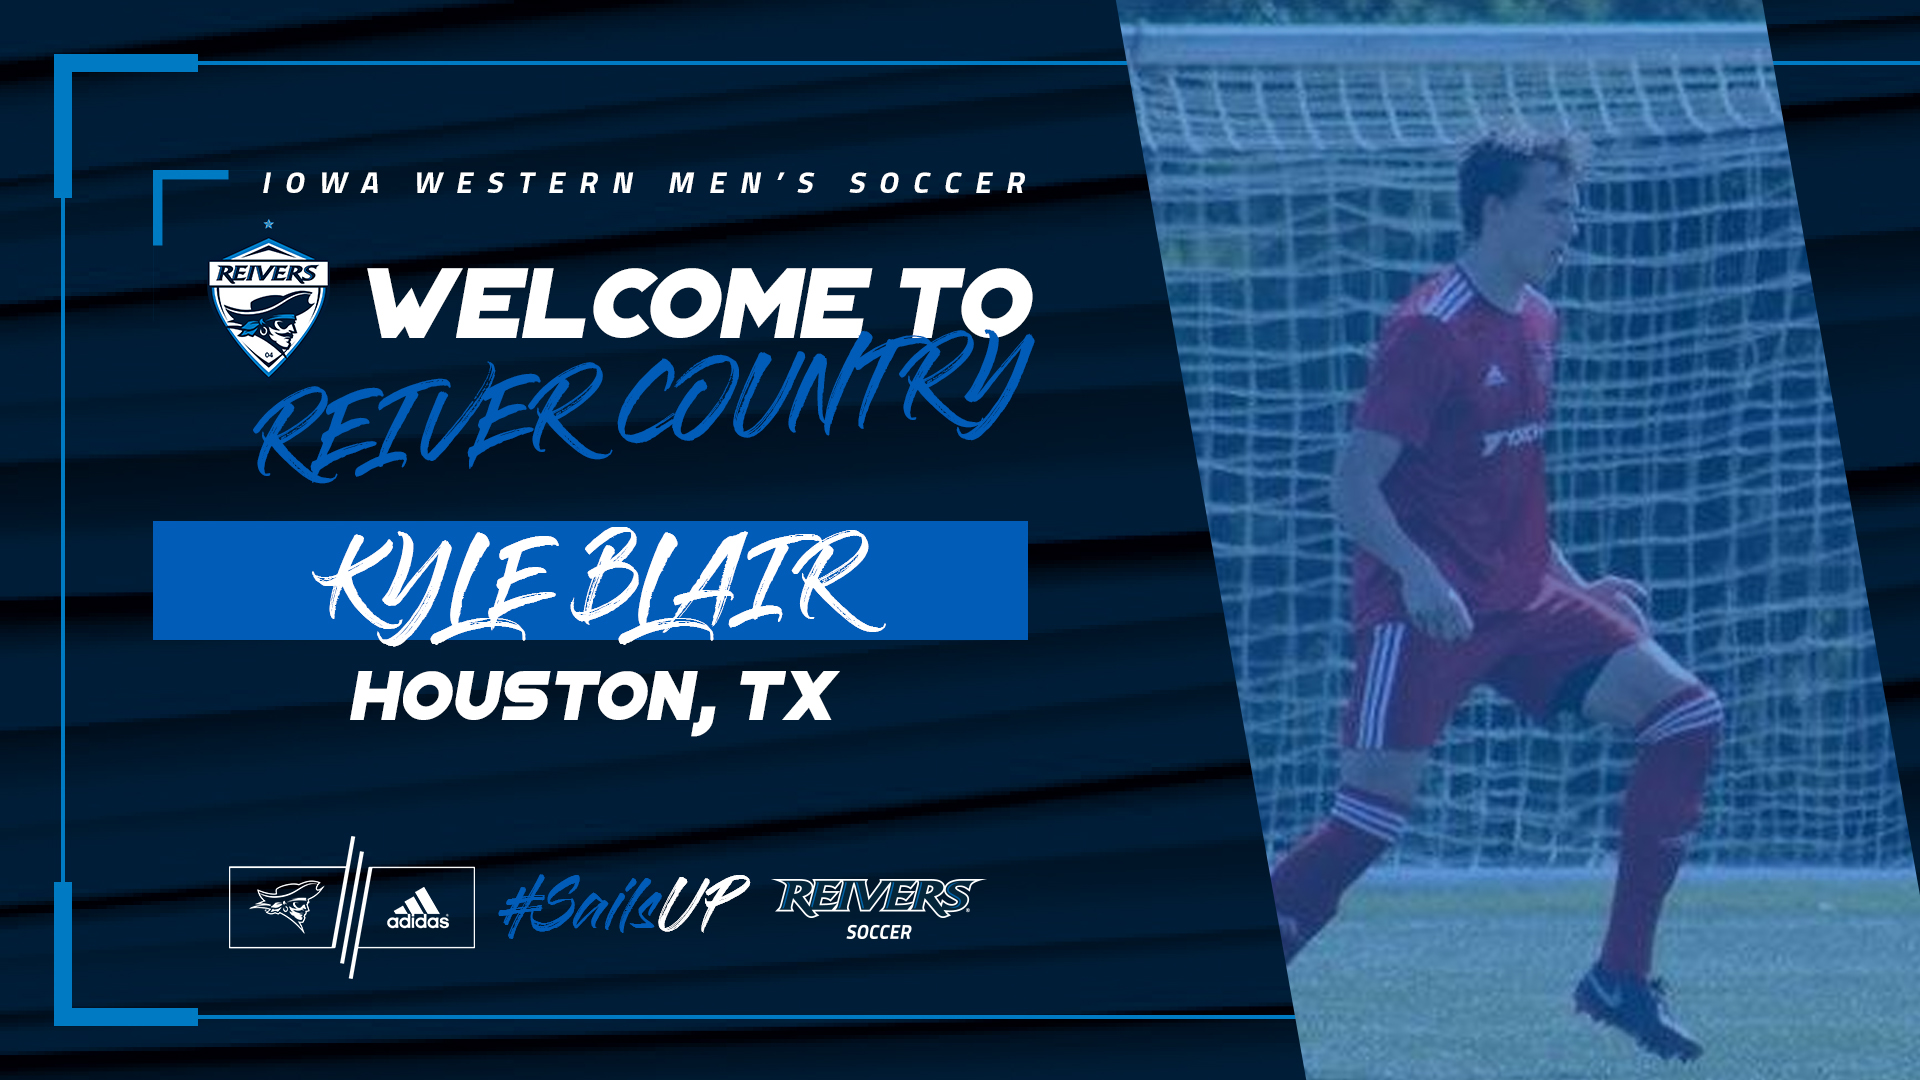 Kyle Blair to join Reiver men's soccer in fall